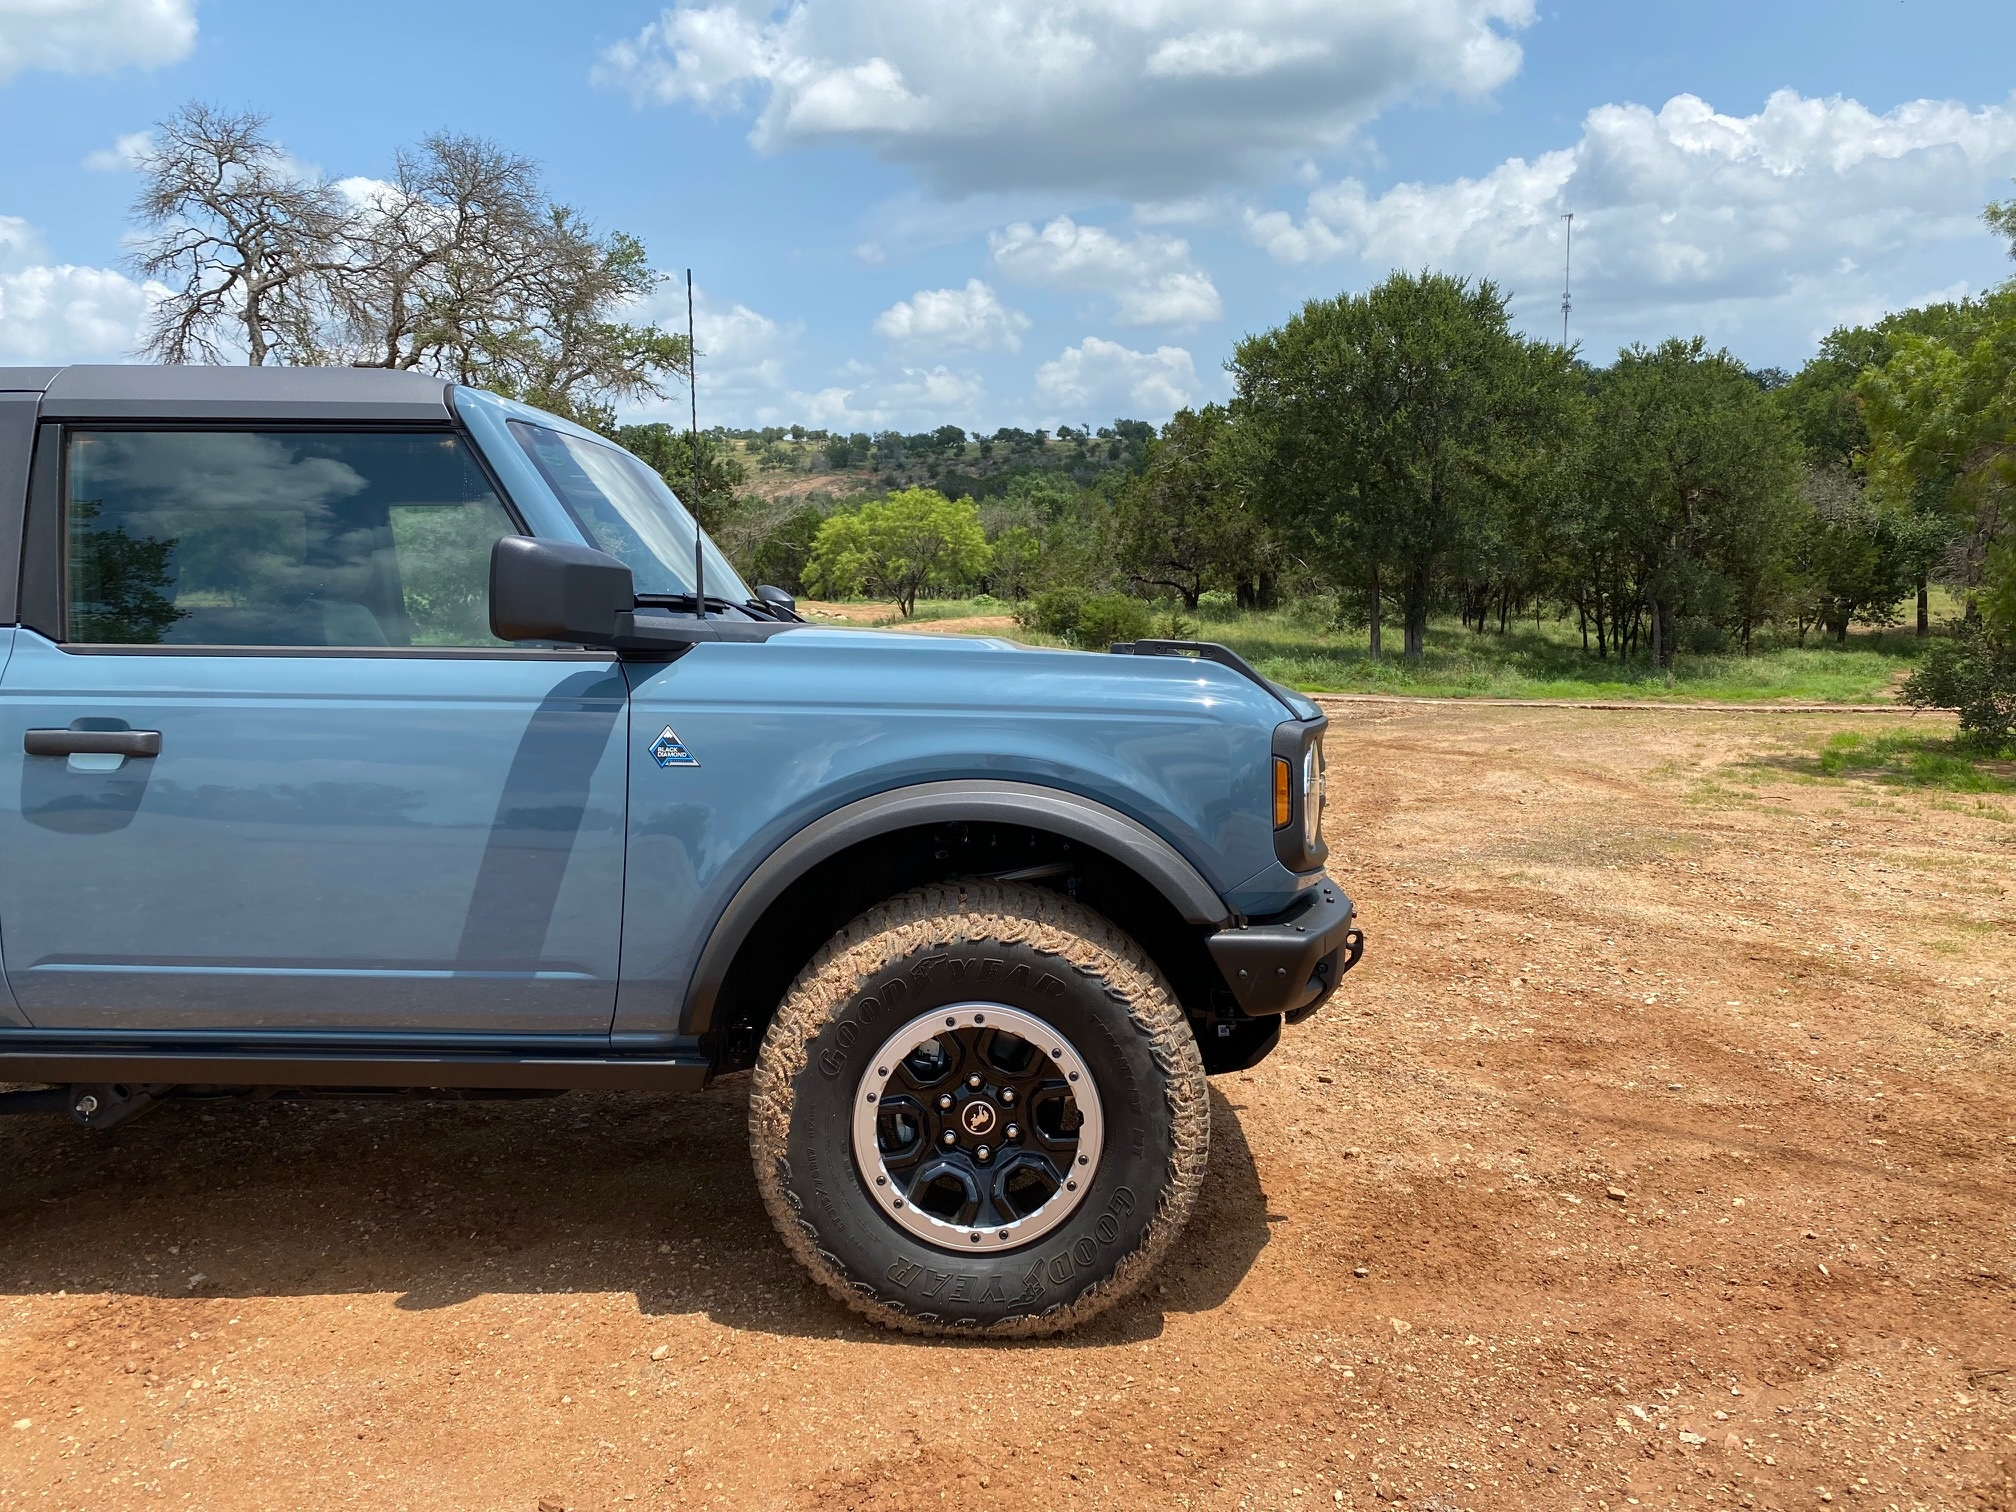 2021 Ford Bronco review - front of SUV